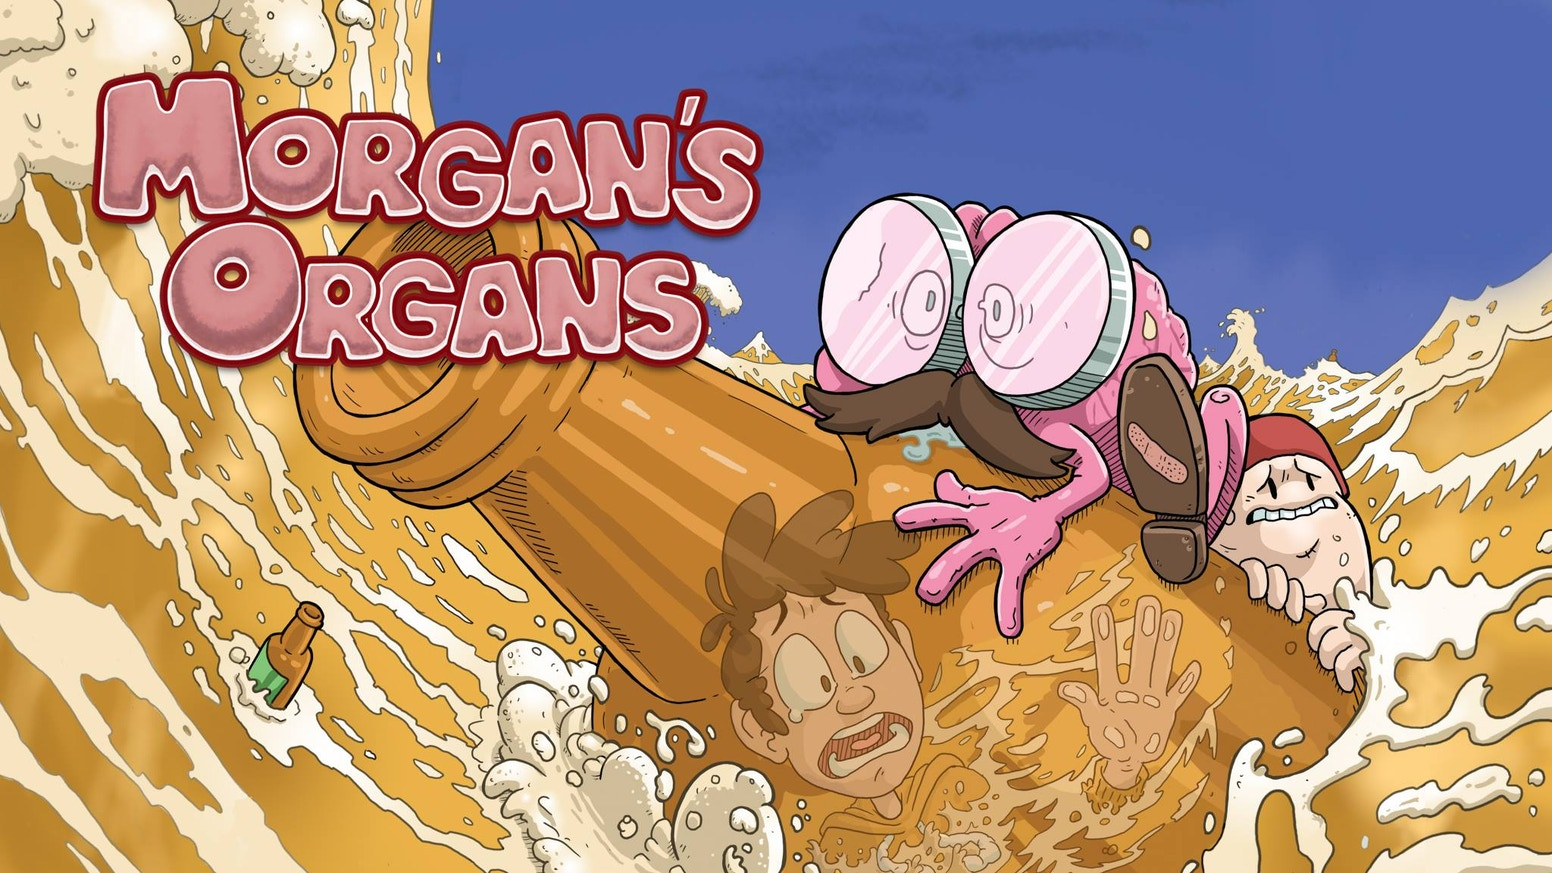 Morgan's Organs returns for Book 3 - where a crazy night of drinking leads to a morning short of memories. Books 1 & 2 also available.